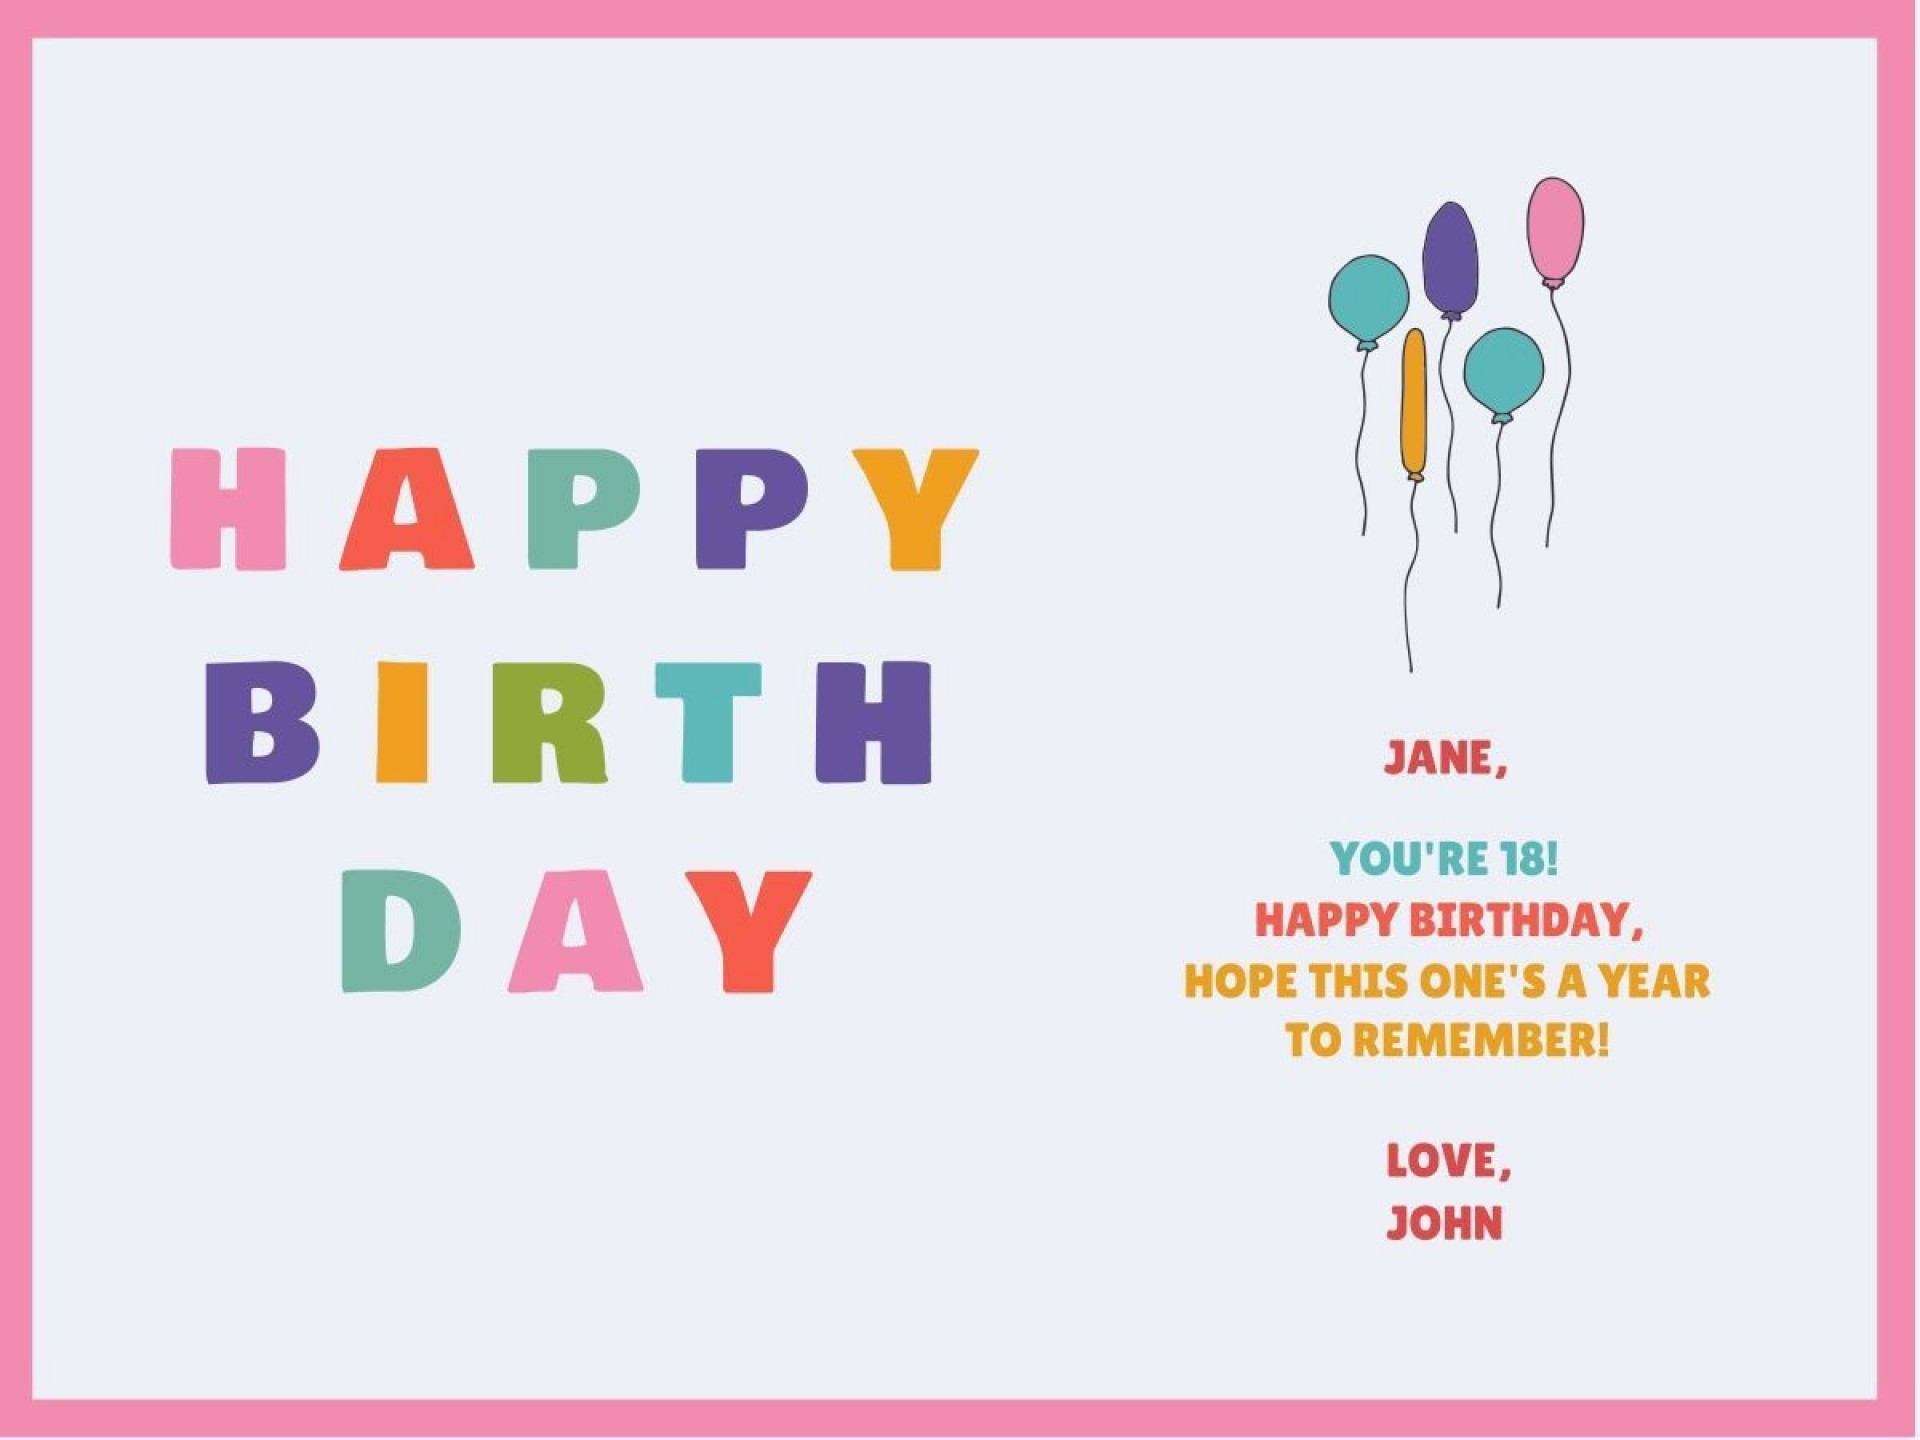 001 Outstanding Happy Birthday Email Template High Resolution  Html To Employee Corporate1920